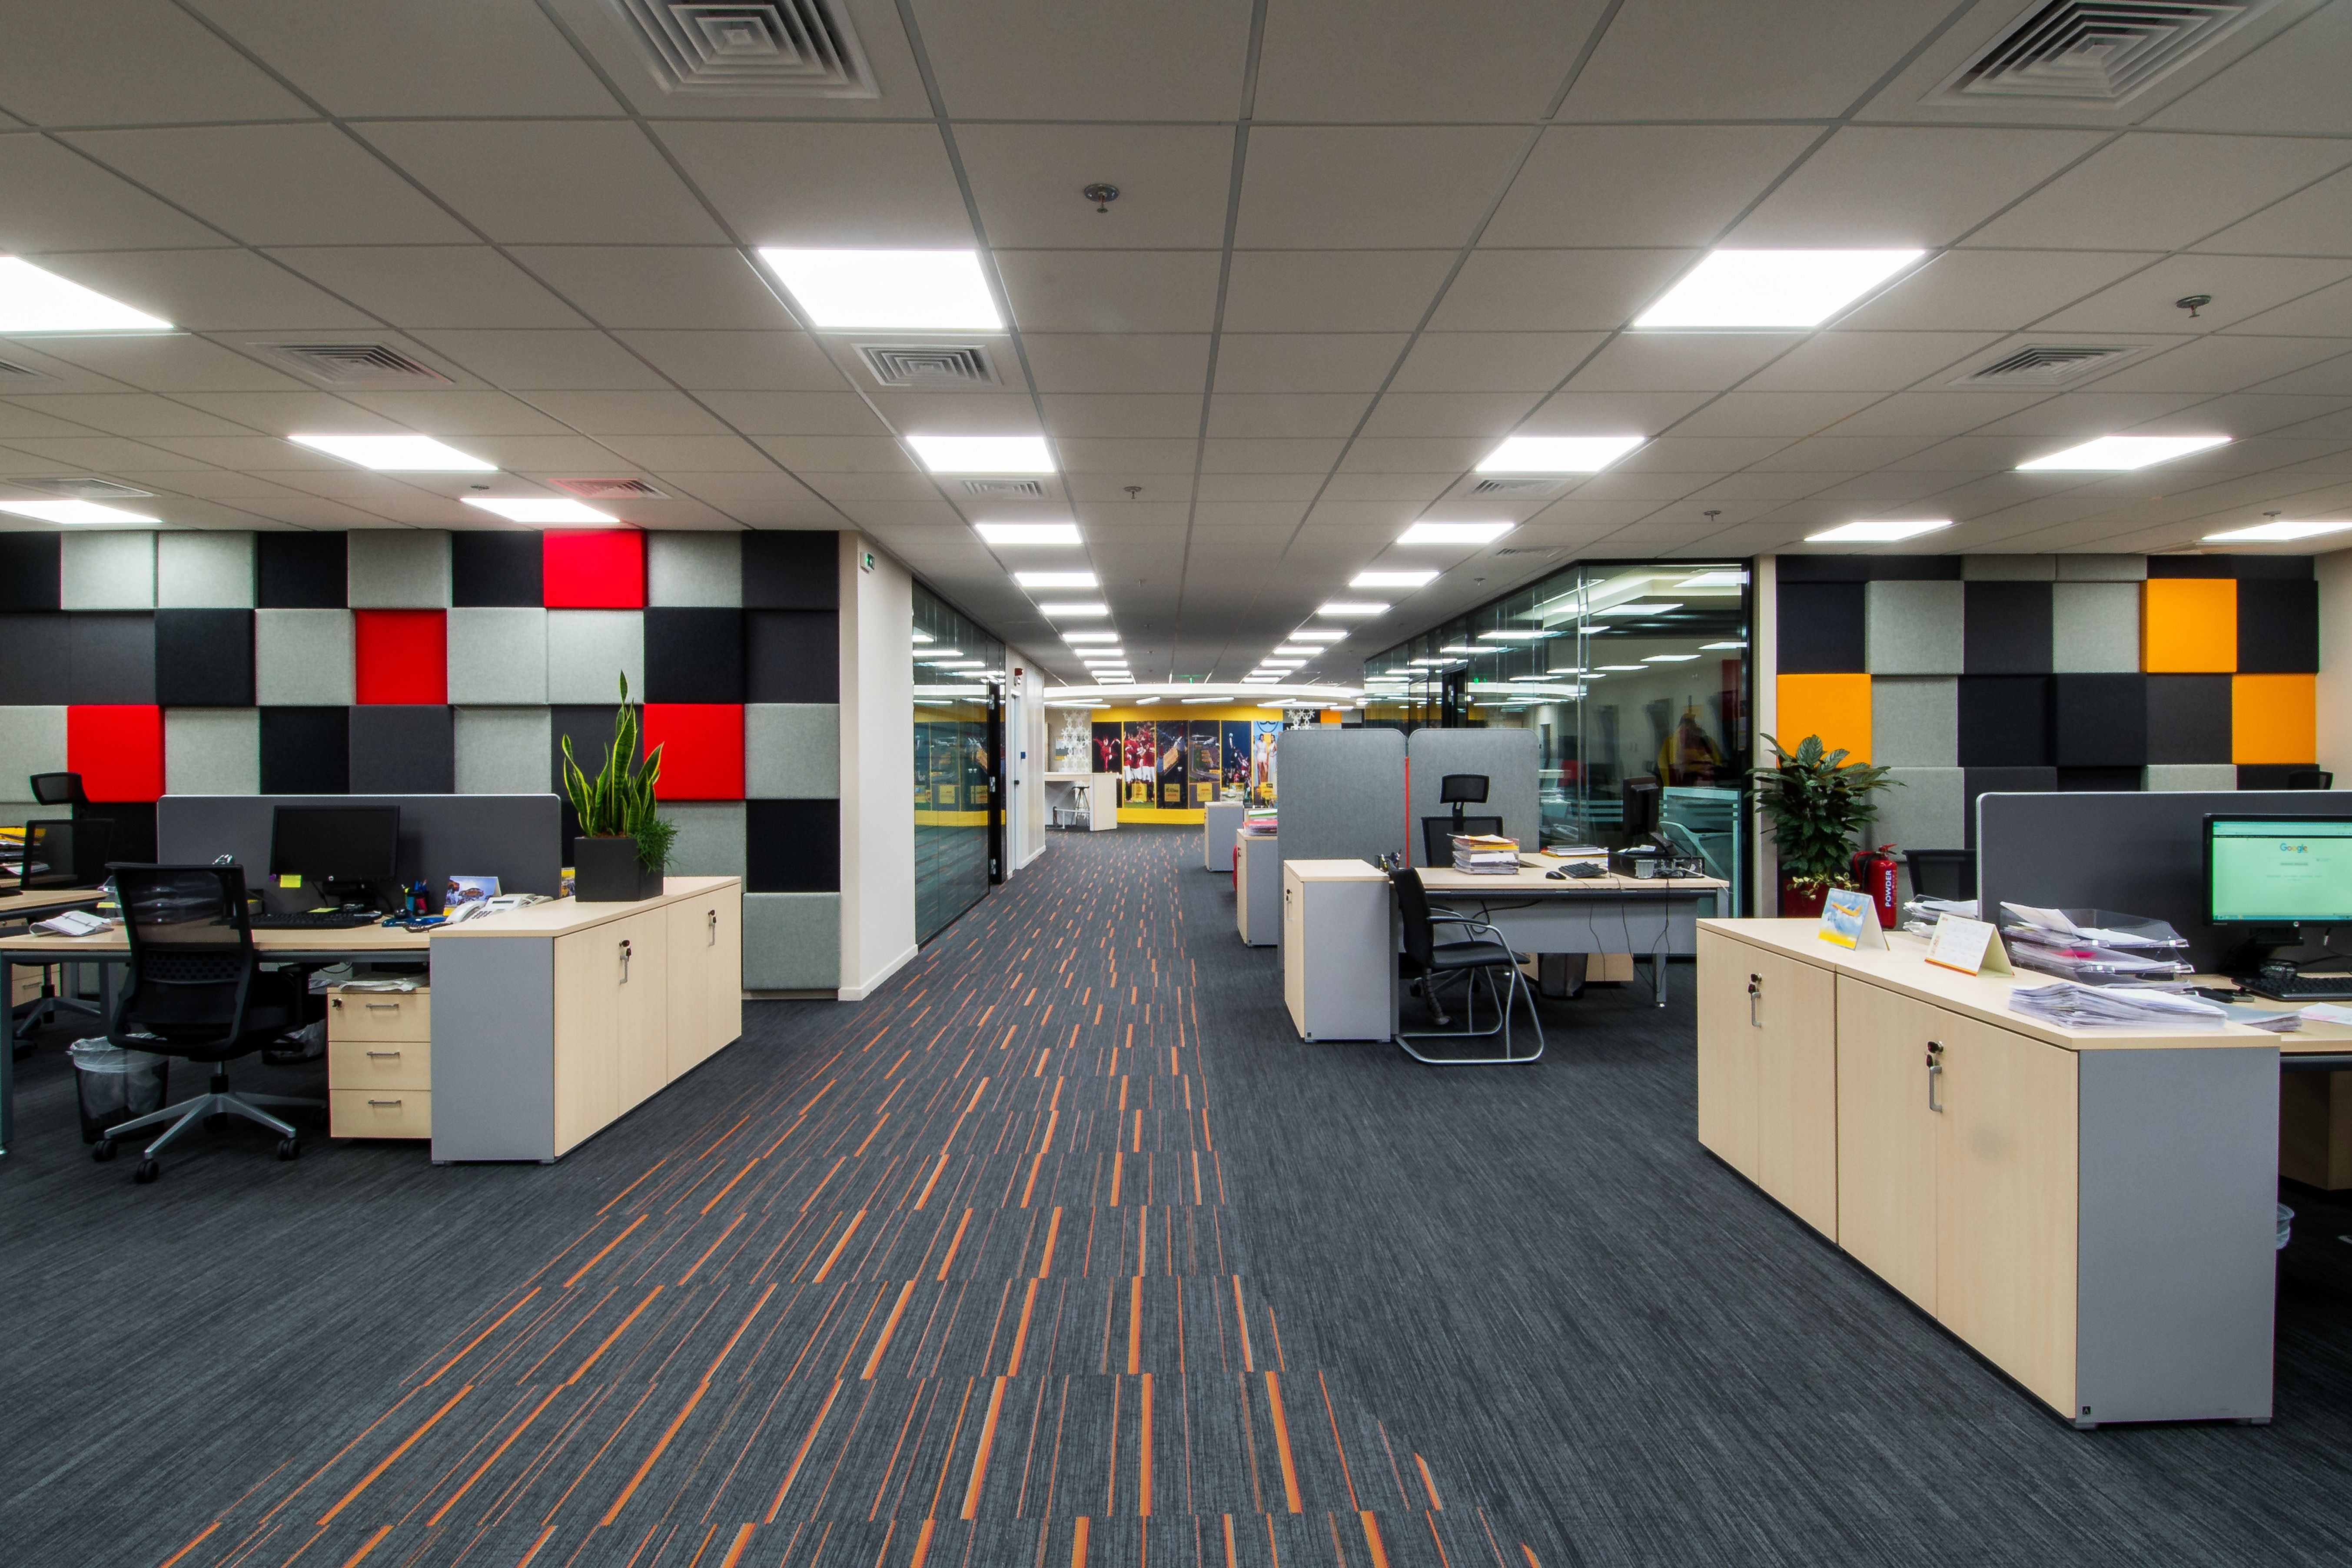 Nice match with the DHL company colours. Open office space